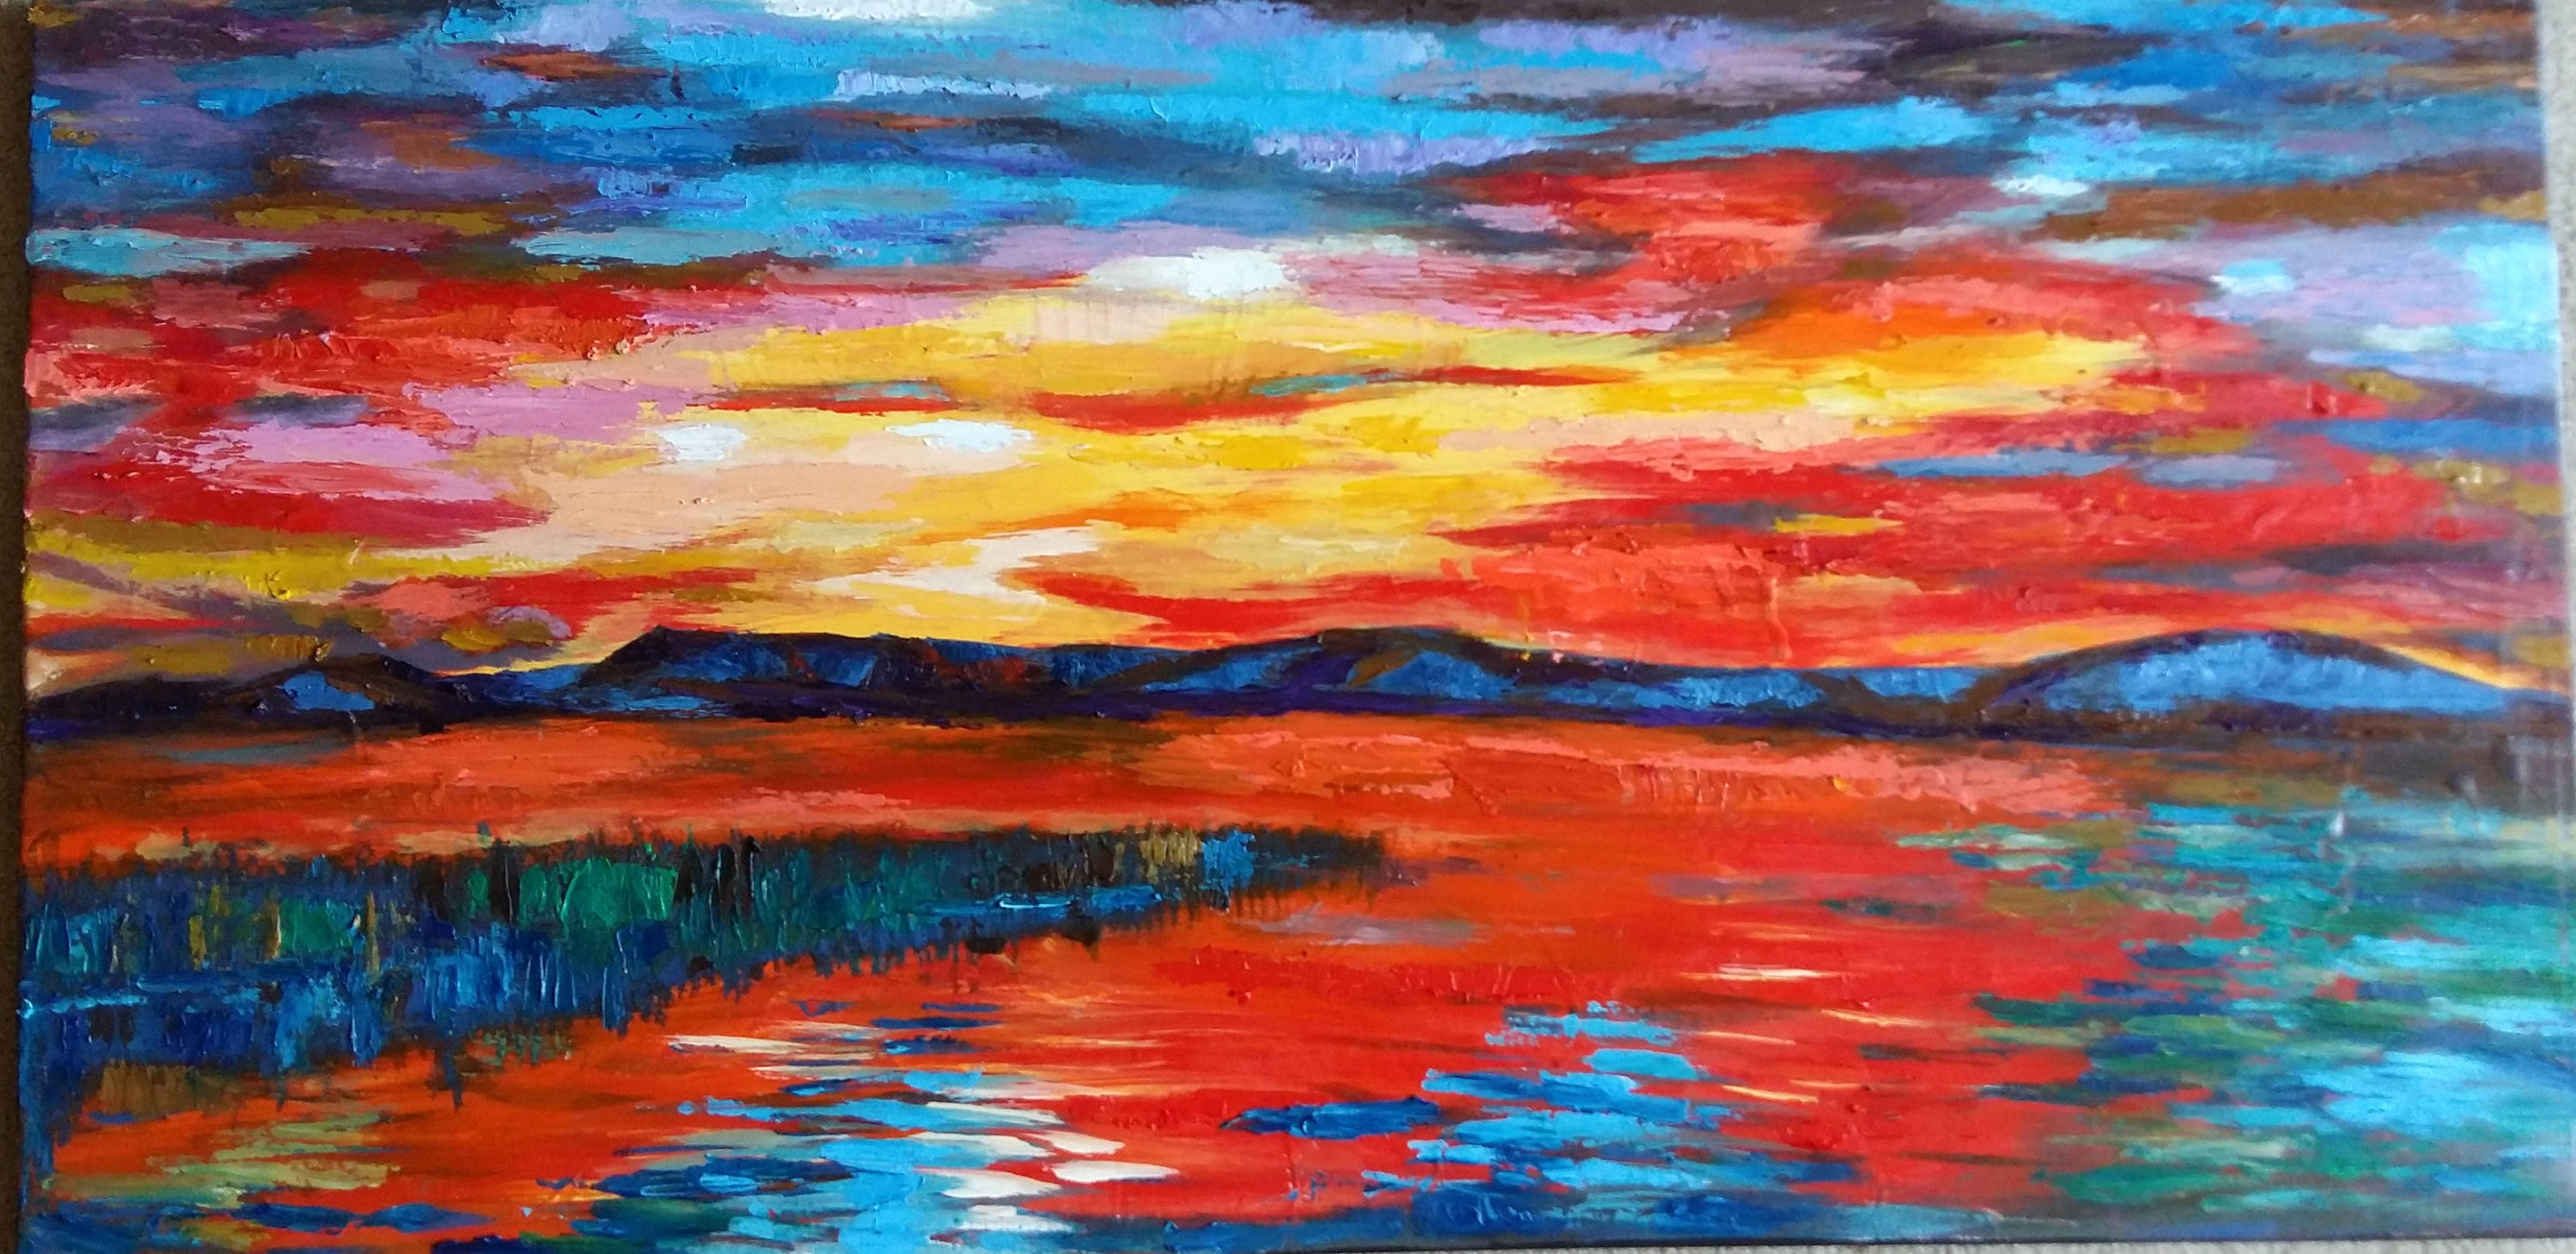 Original Oil And Acrylic Painting Sunset Over Sea